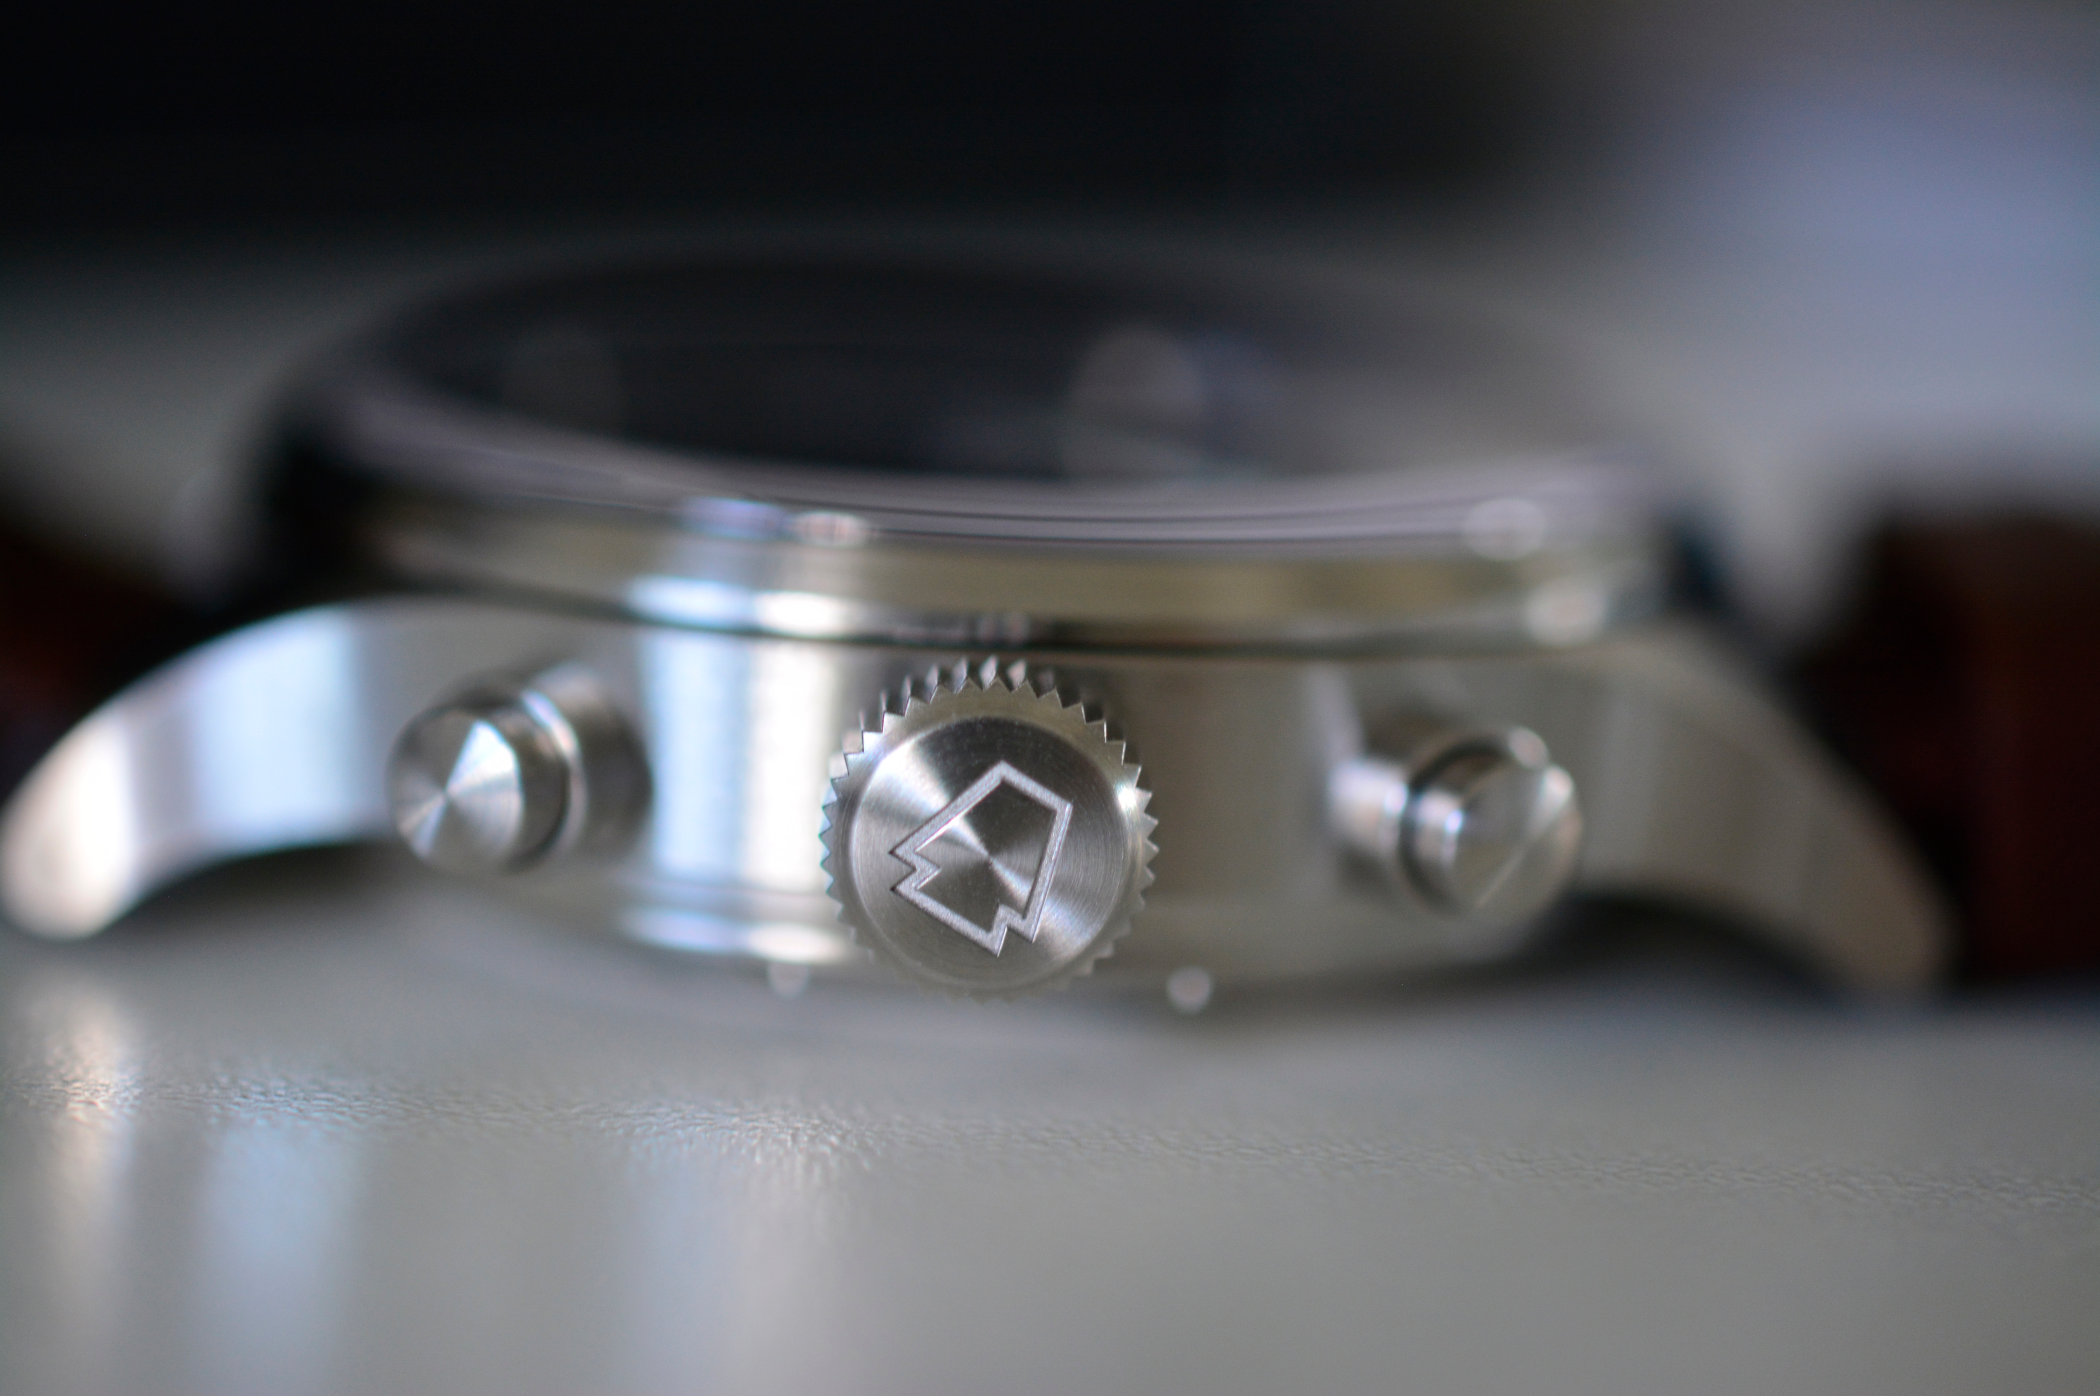 Crown and pushers for the RGM Model 600 Chronograph